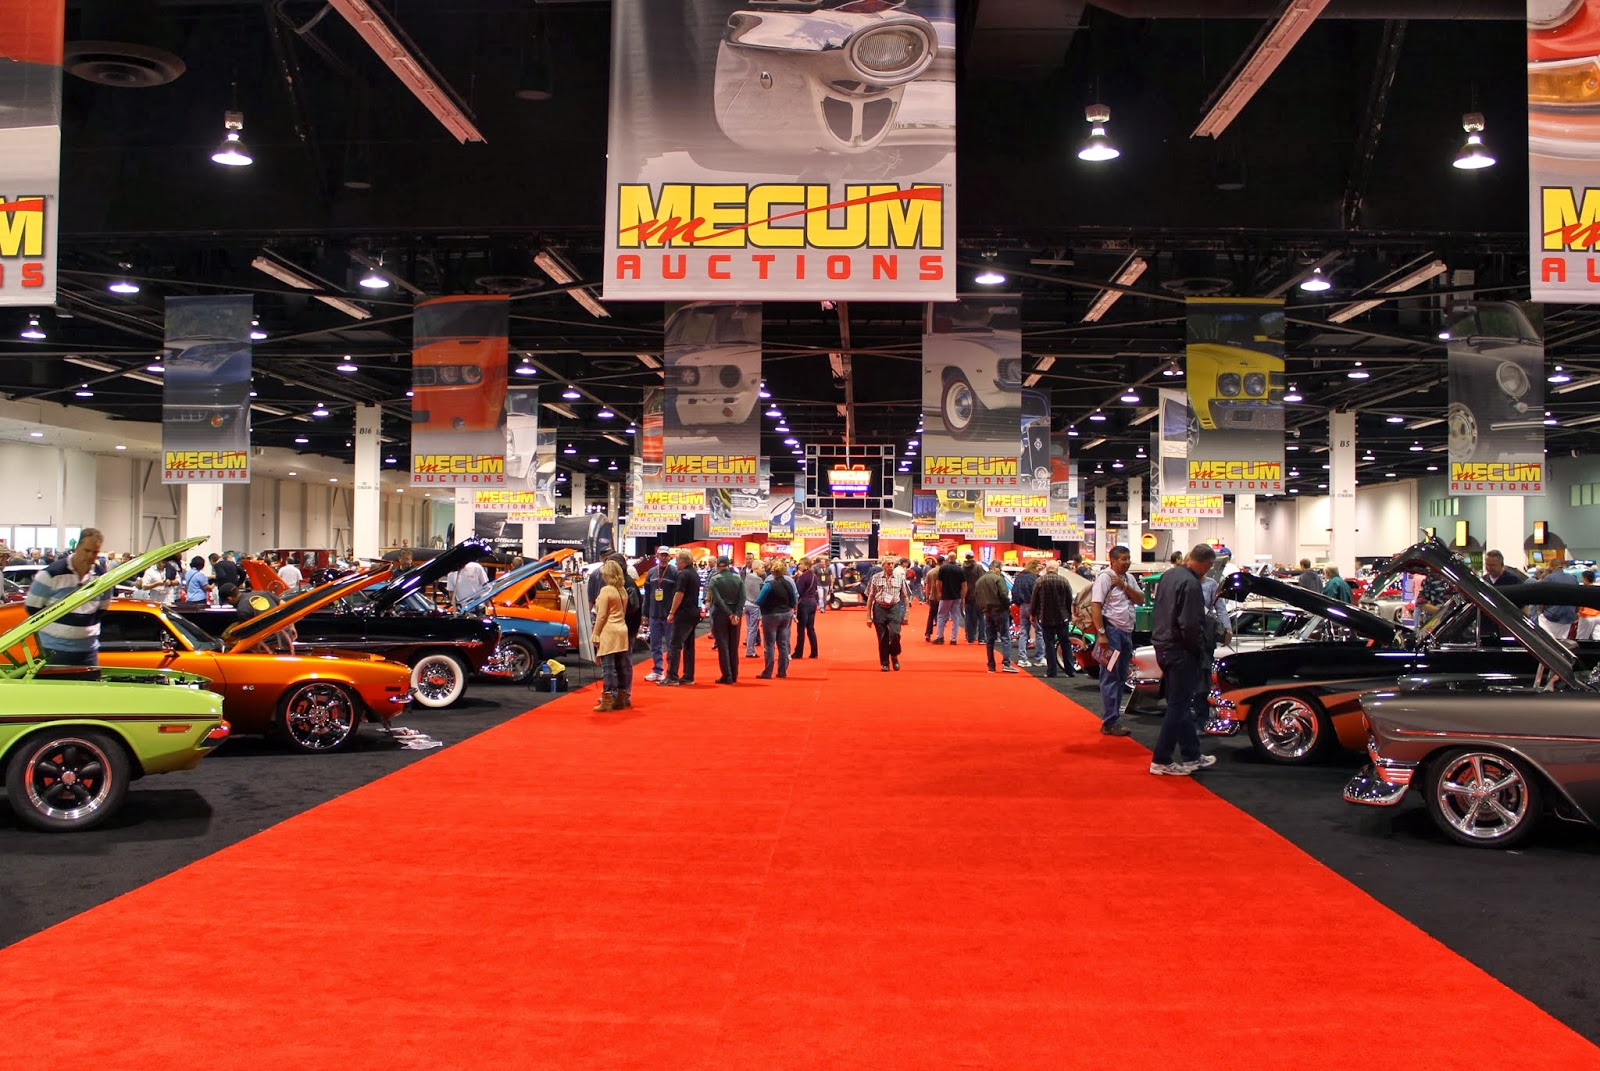 Covering Classic Cars : Photos from the 2013 Mecum Auto Auction in ...